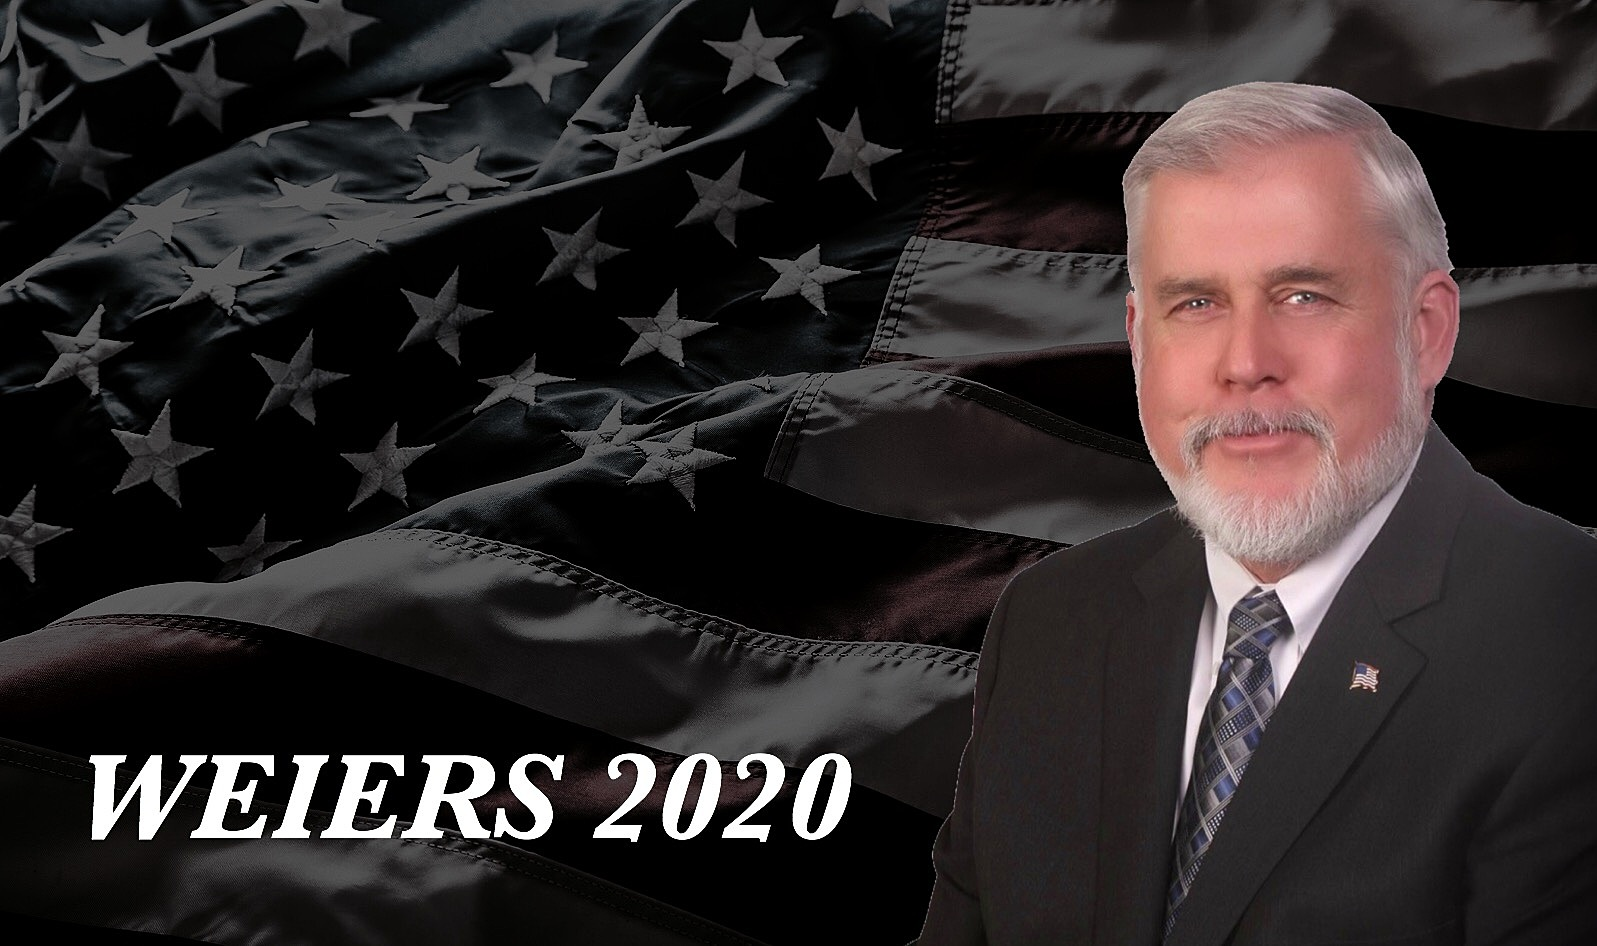 Weiers for Mayor: Weiers 2020